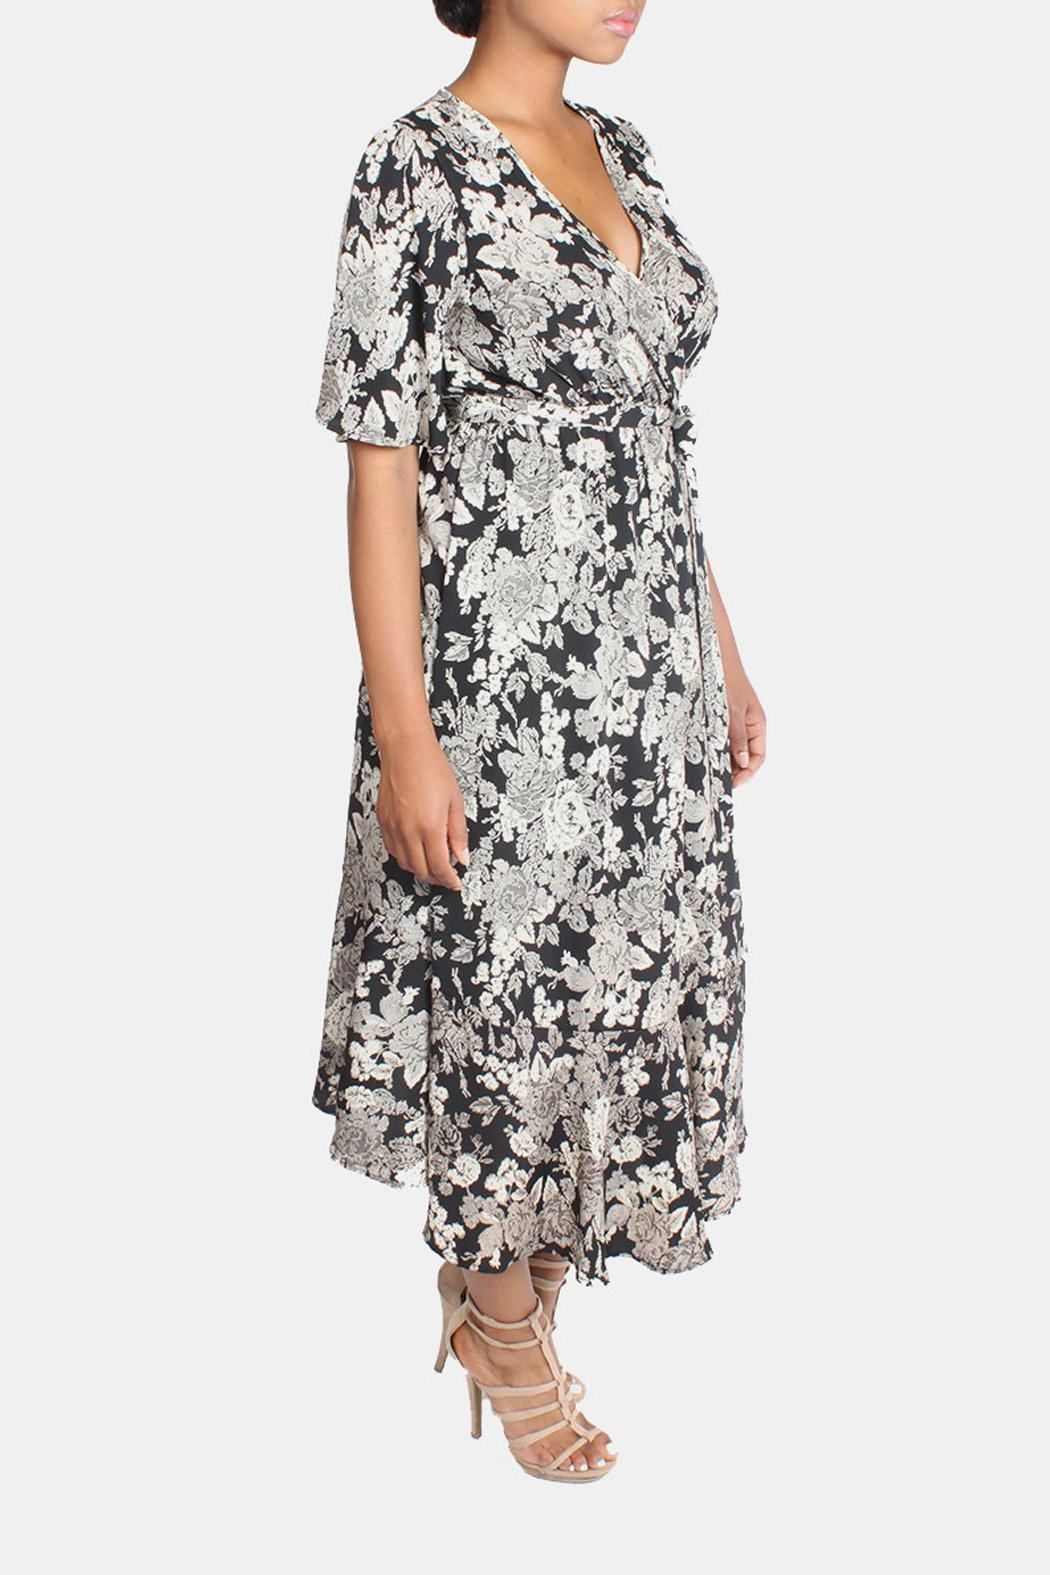 Chris & Carol Floral Print Maxi Dress from Los Angeles by Goldie's ...